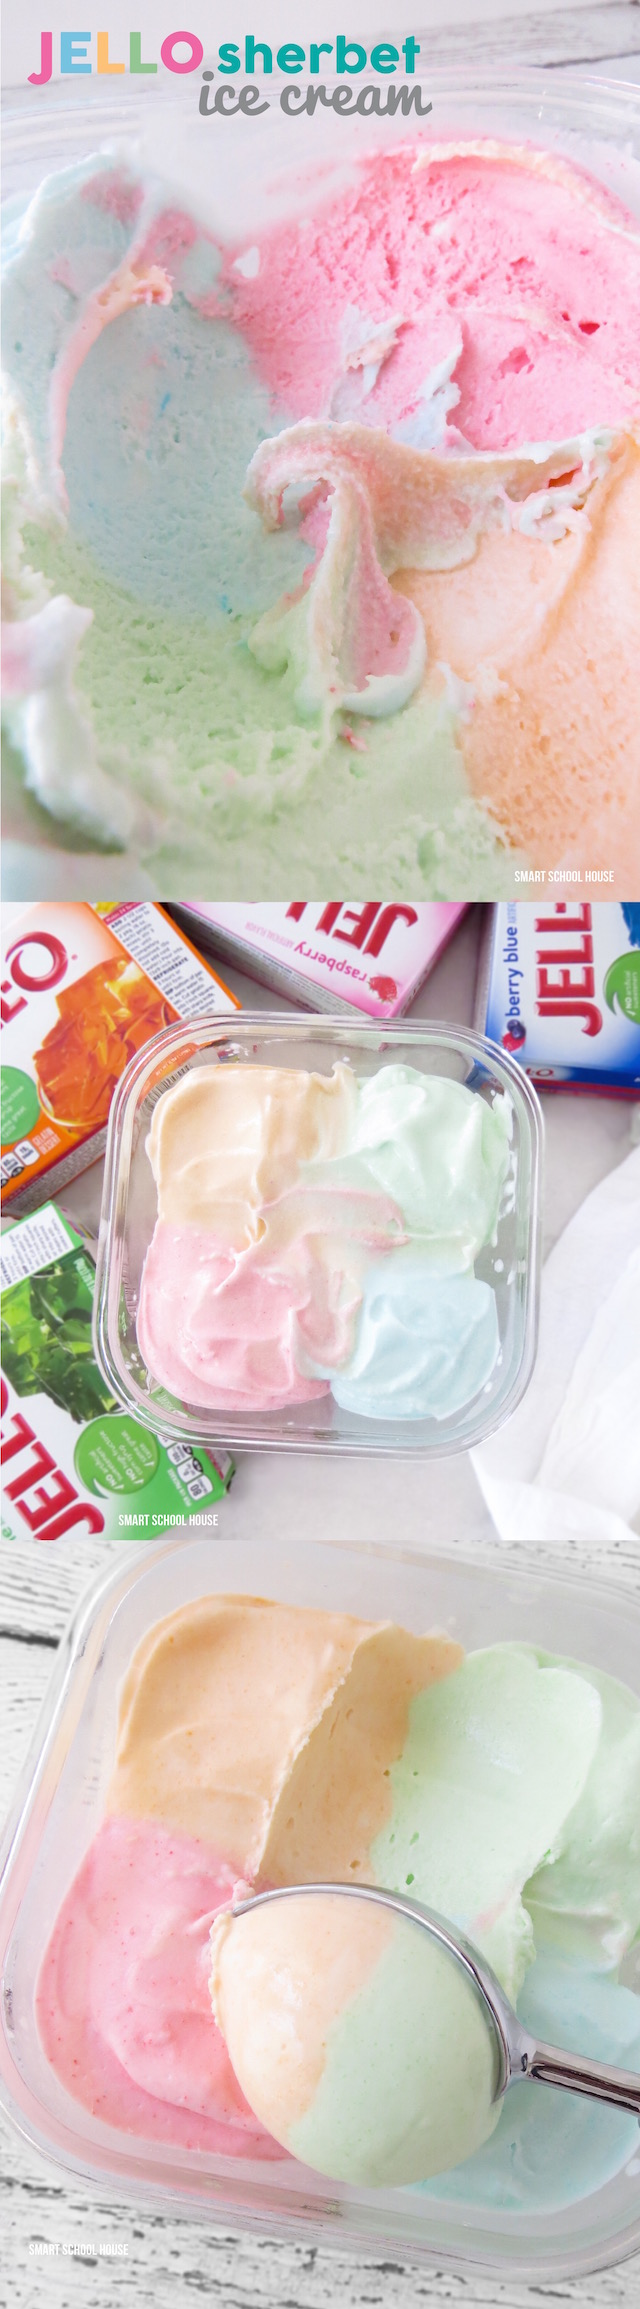 What is sherbet ice cream?